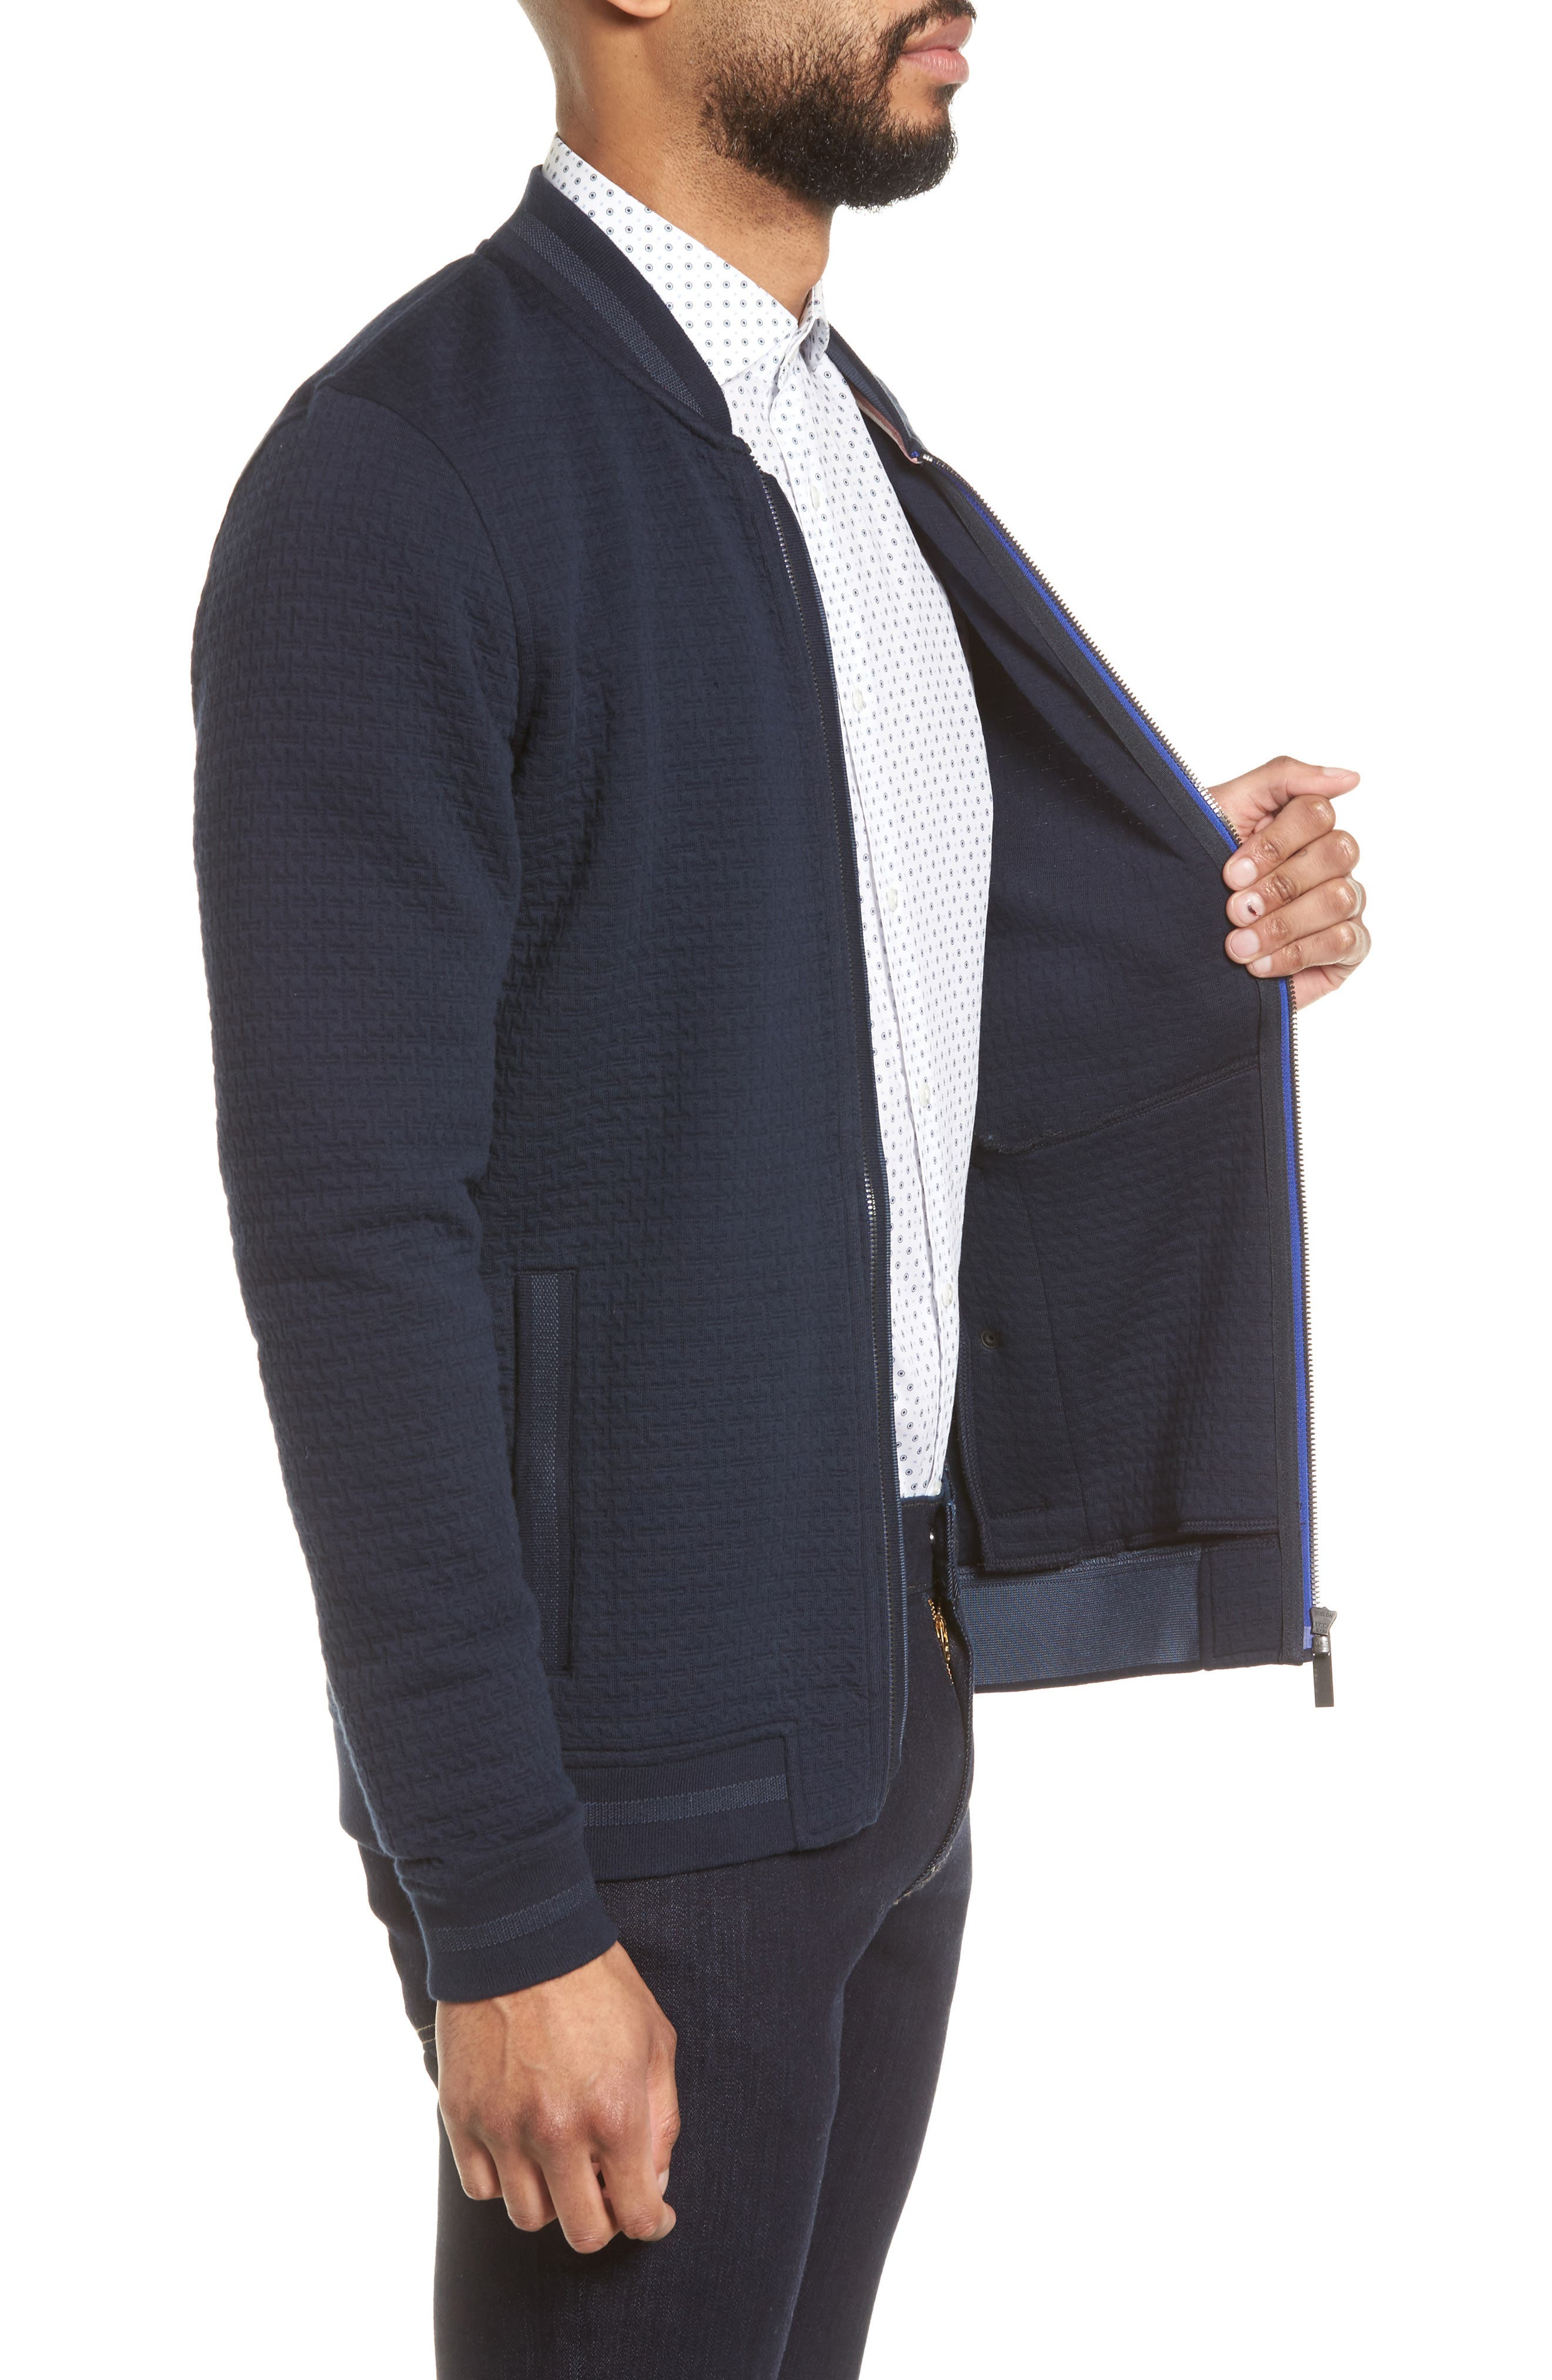 Akitaa Quilted Jacquard Bomber Jacket,                             Alternate thumbnail 3, color,                             410